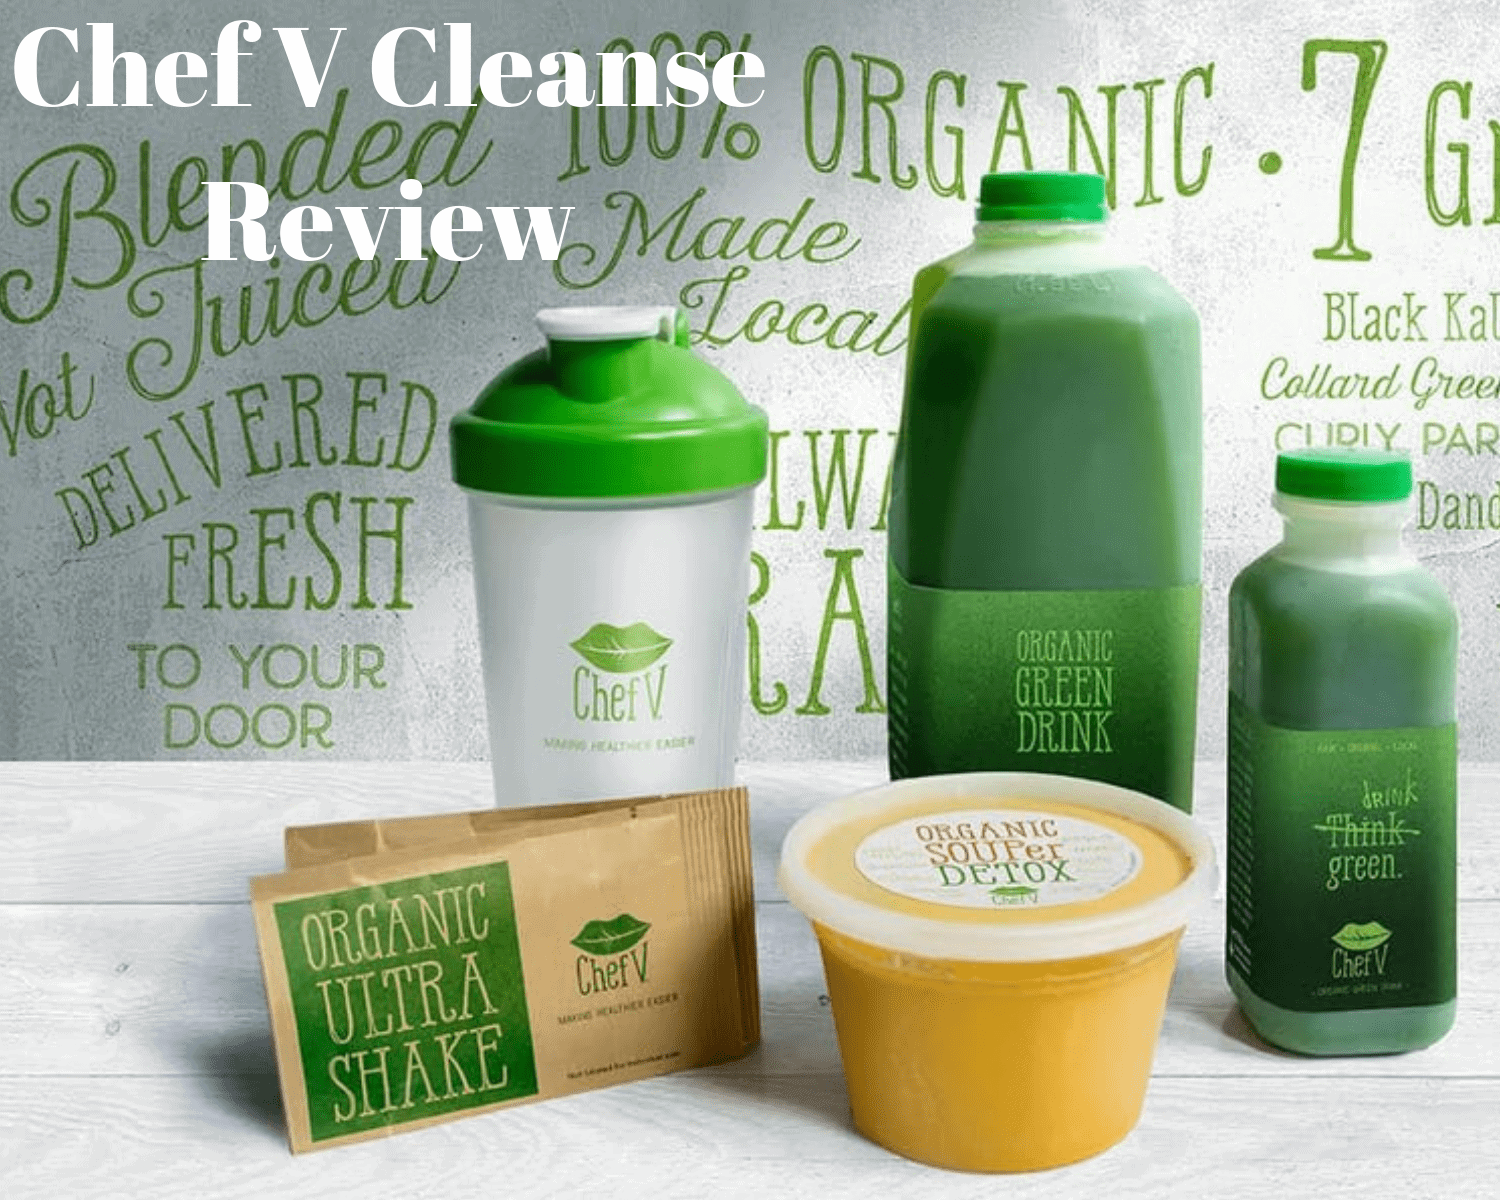 Chef V Cleanse Review